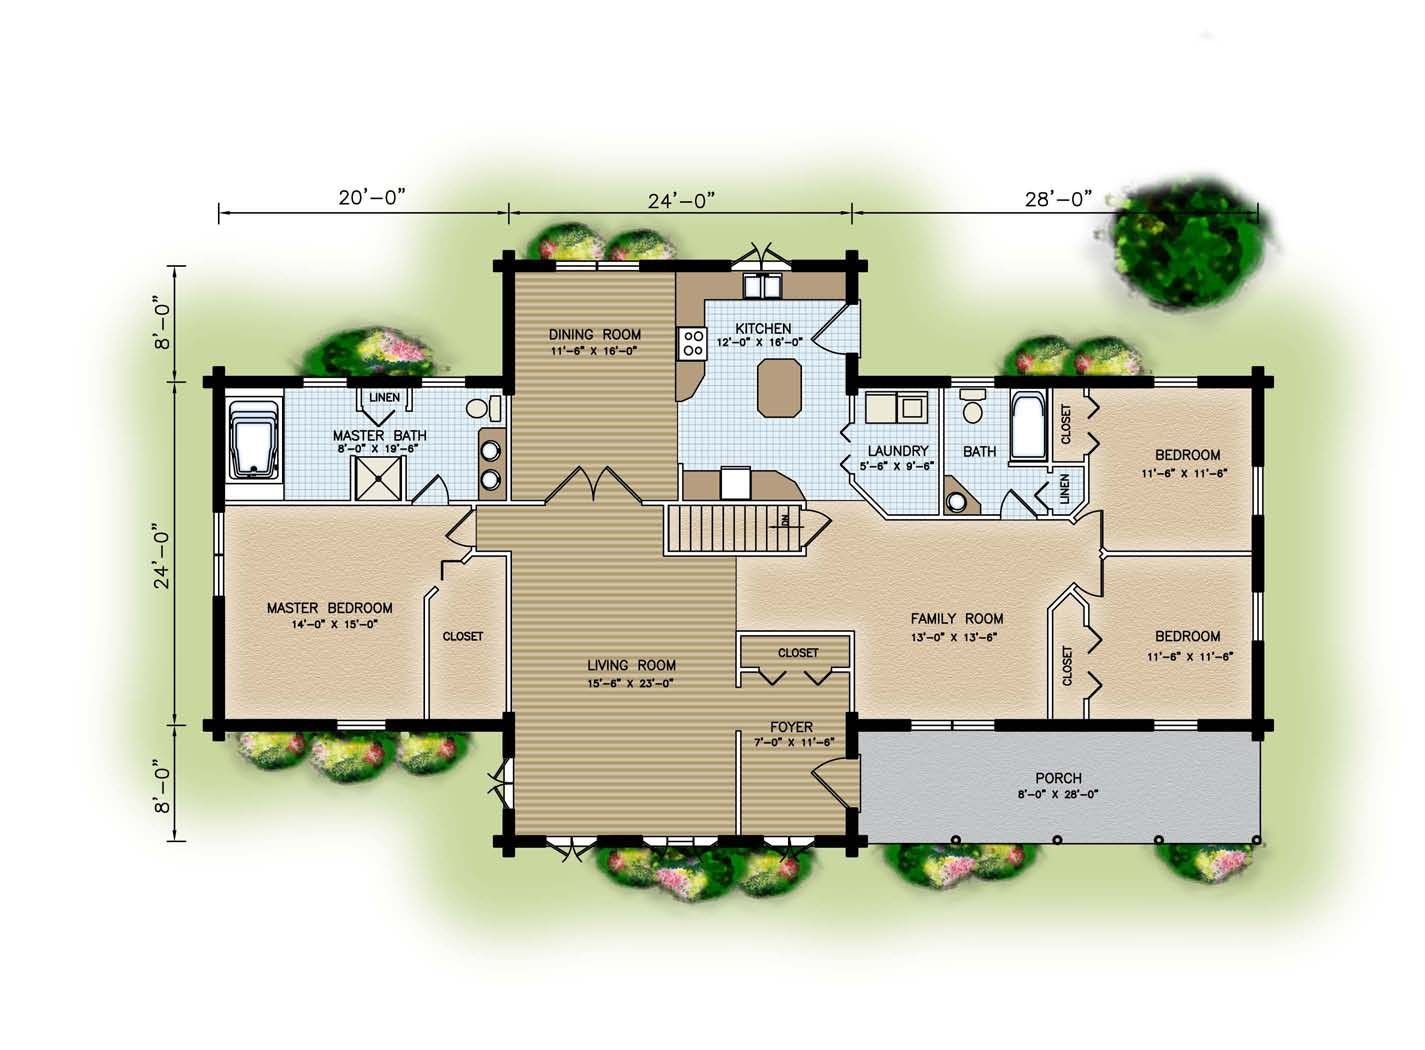 Floor Plans And Easy Way To Design Them Dream Home Designs House Floor Plans Custom Home Plans House Flooring